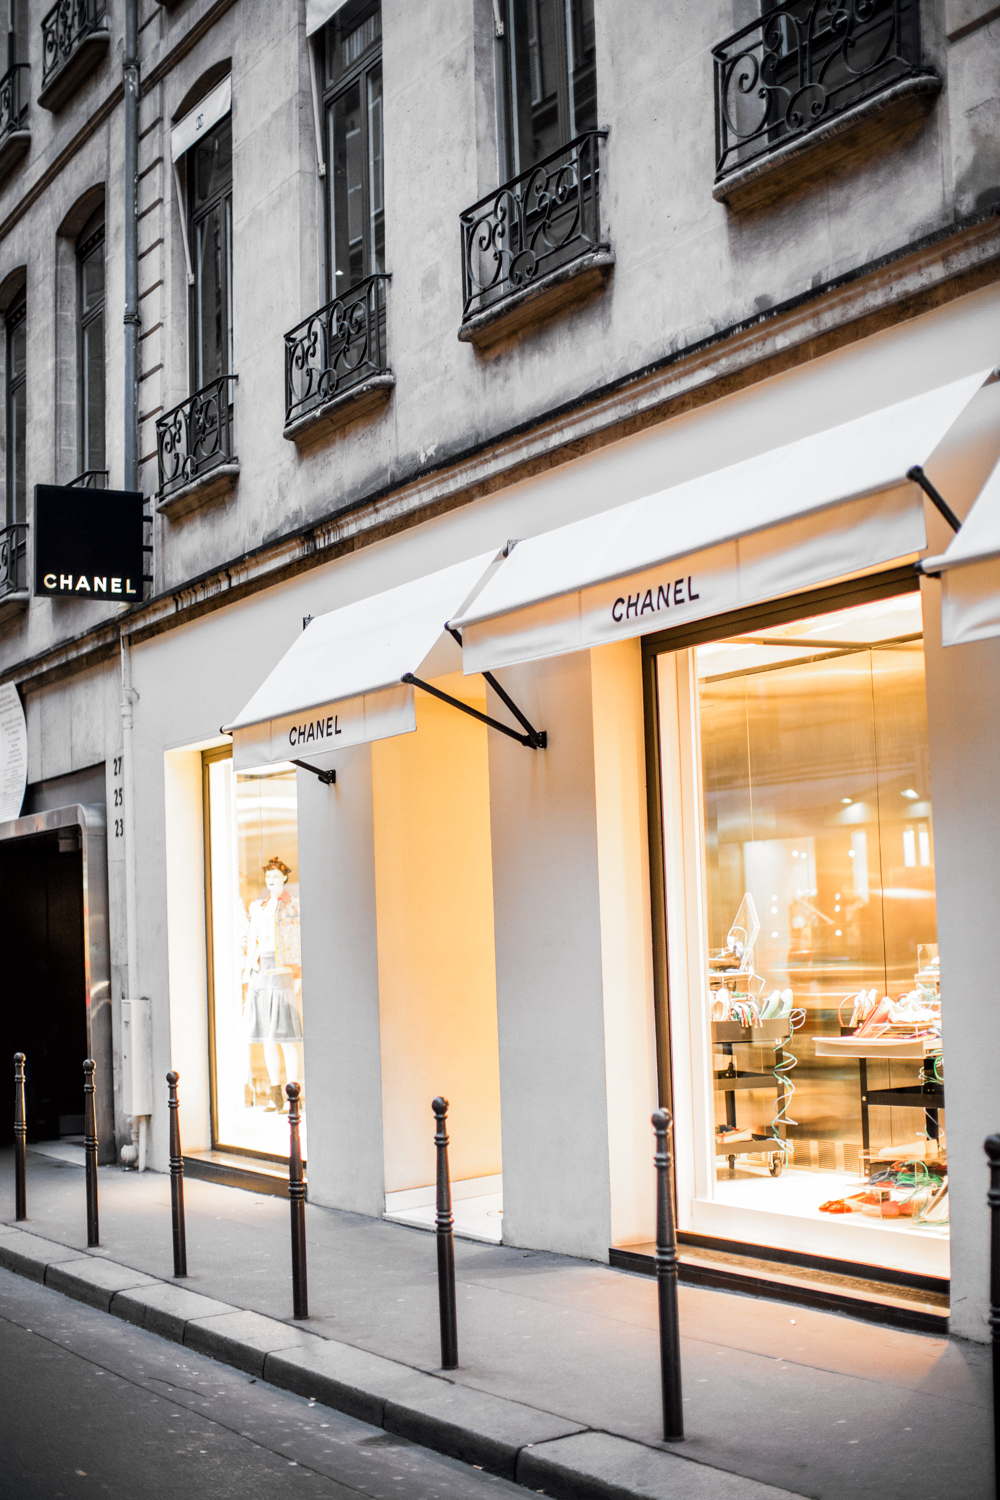 Chanel 31 rue cambon paris unboxing irenesarah for Chanel locations in paris